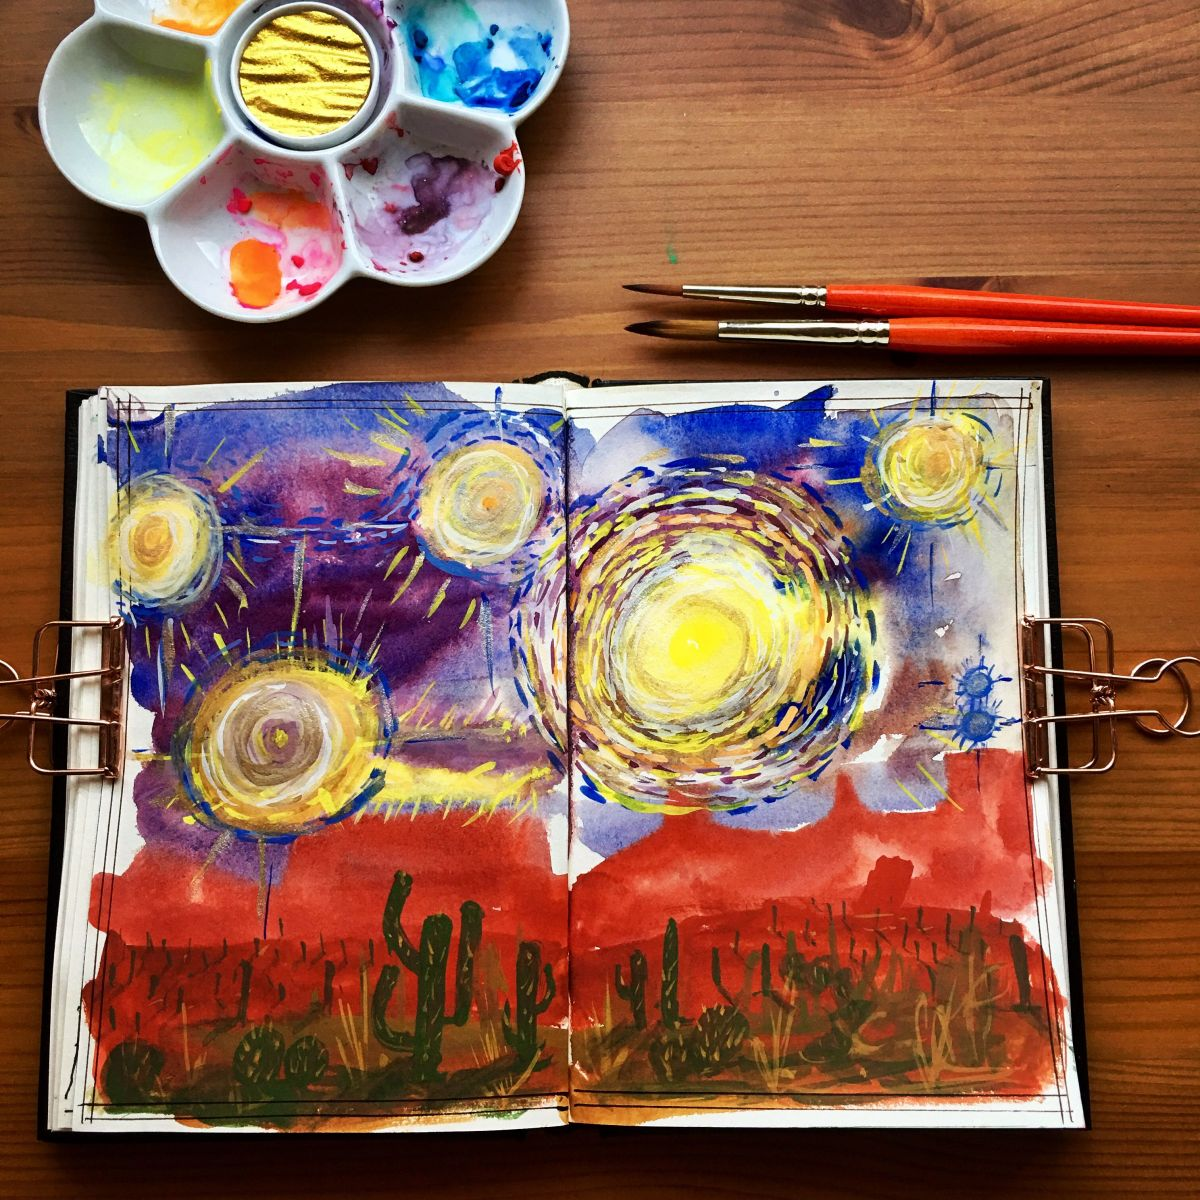 Caran d'Ache gouache studio 15 pan palette and Holbein artists gouache set of 18 tubes desert orb painting by jessica seacrest